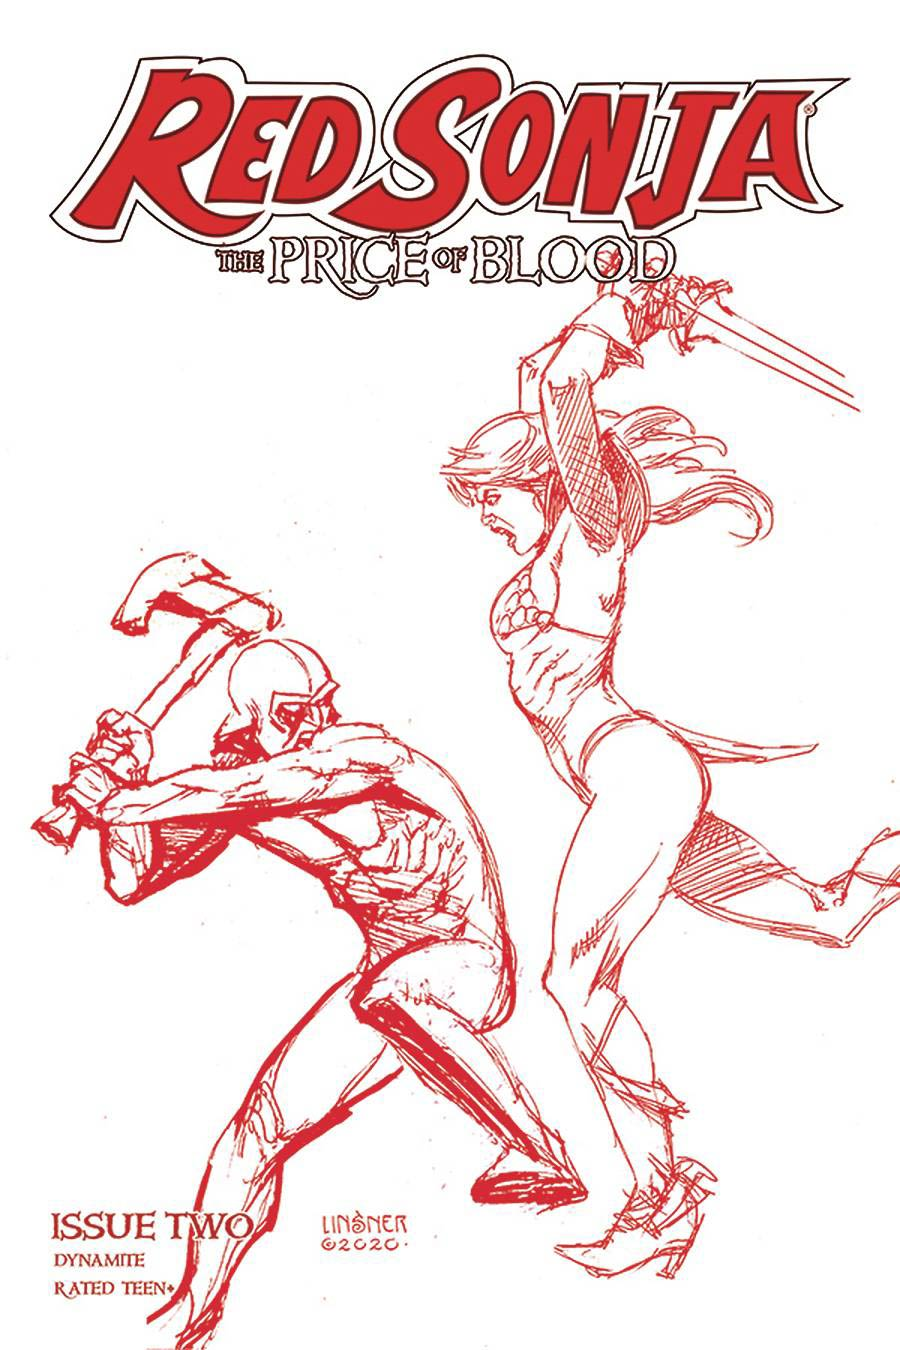 Red Sonja Price Of Blood #2 Cover R Ultra-Premium Limited Edition Joseph Michael Linsner Crimson Red Line Art Cover